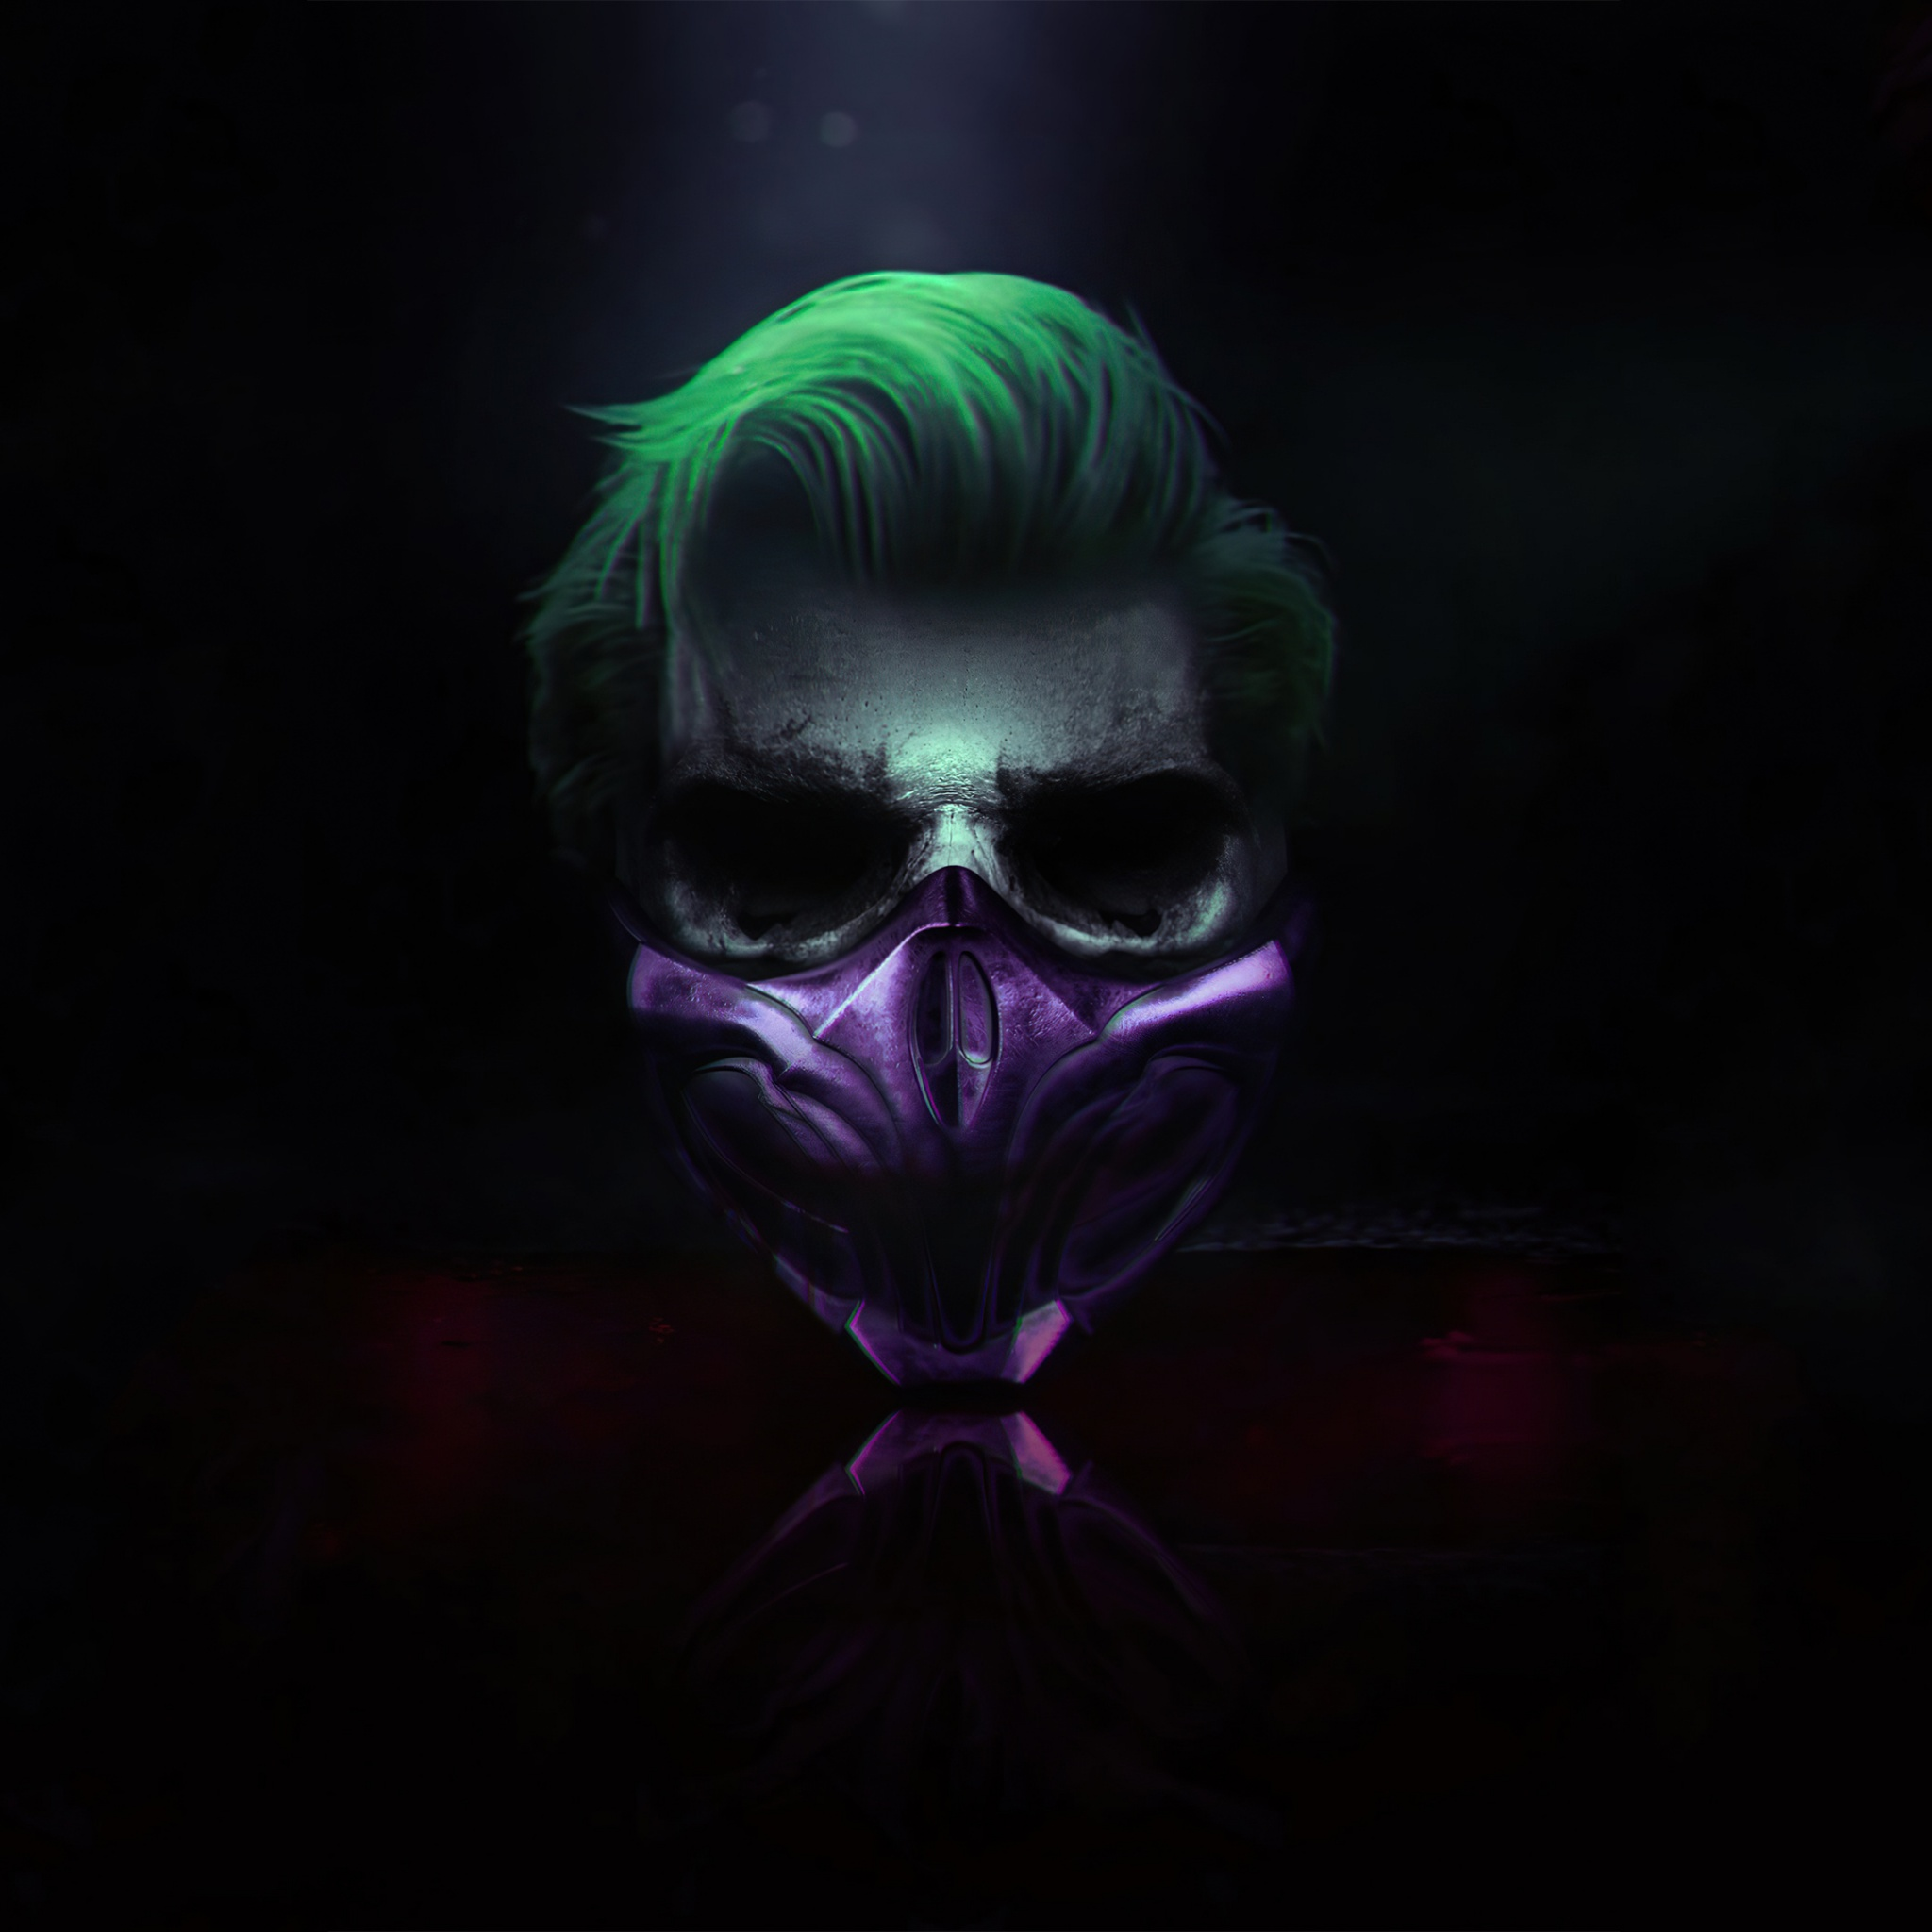 Joker 4k Wallpaper Mask Cyberpunk Dark Background Graphics Cgi 1483